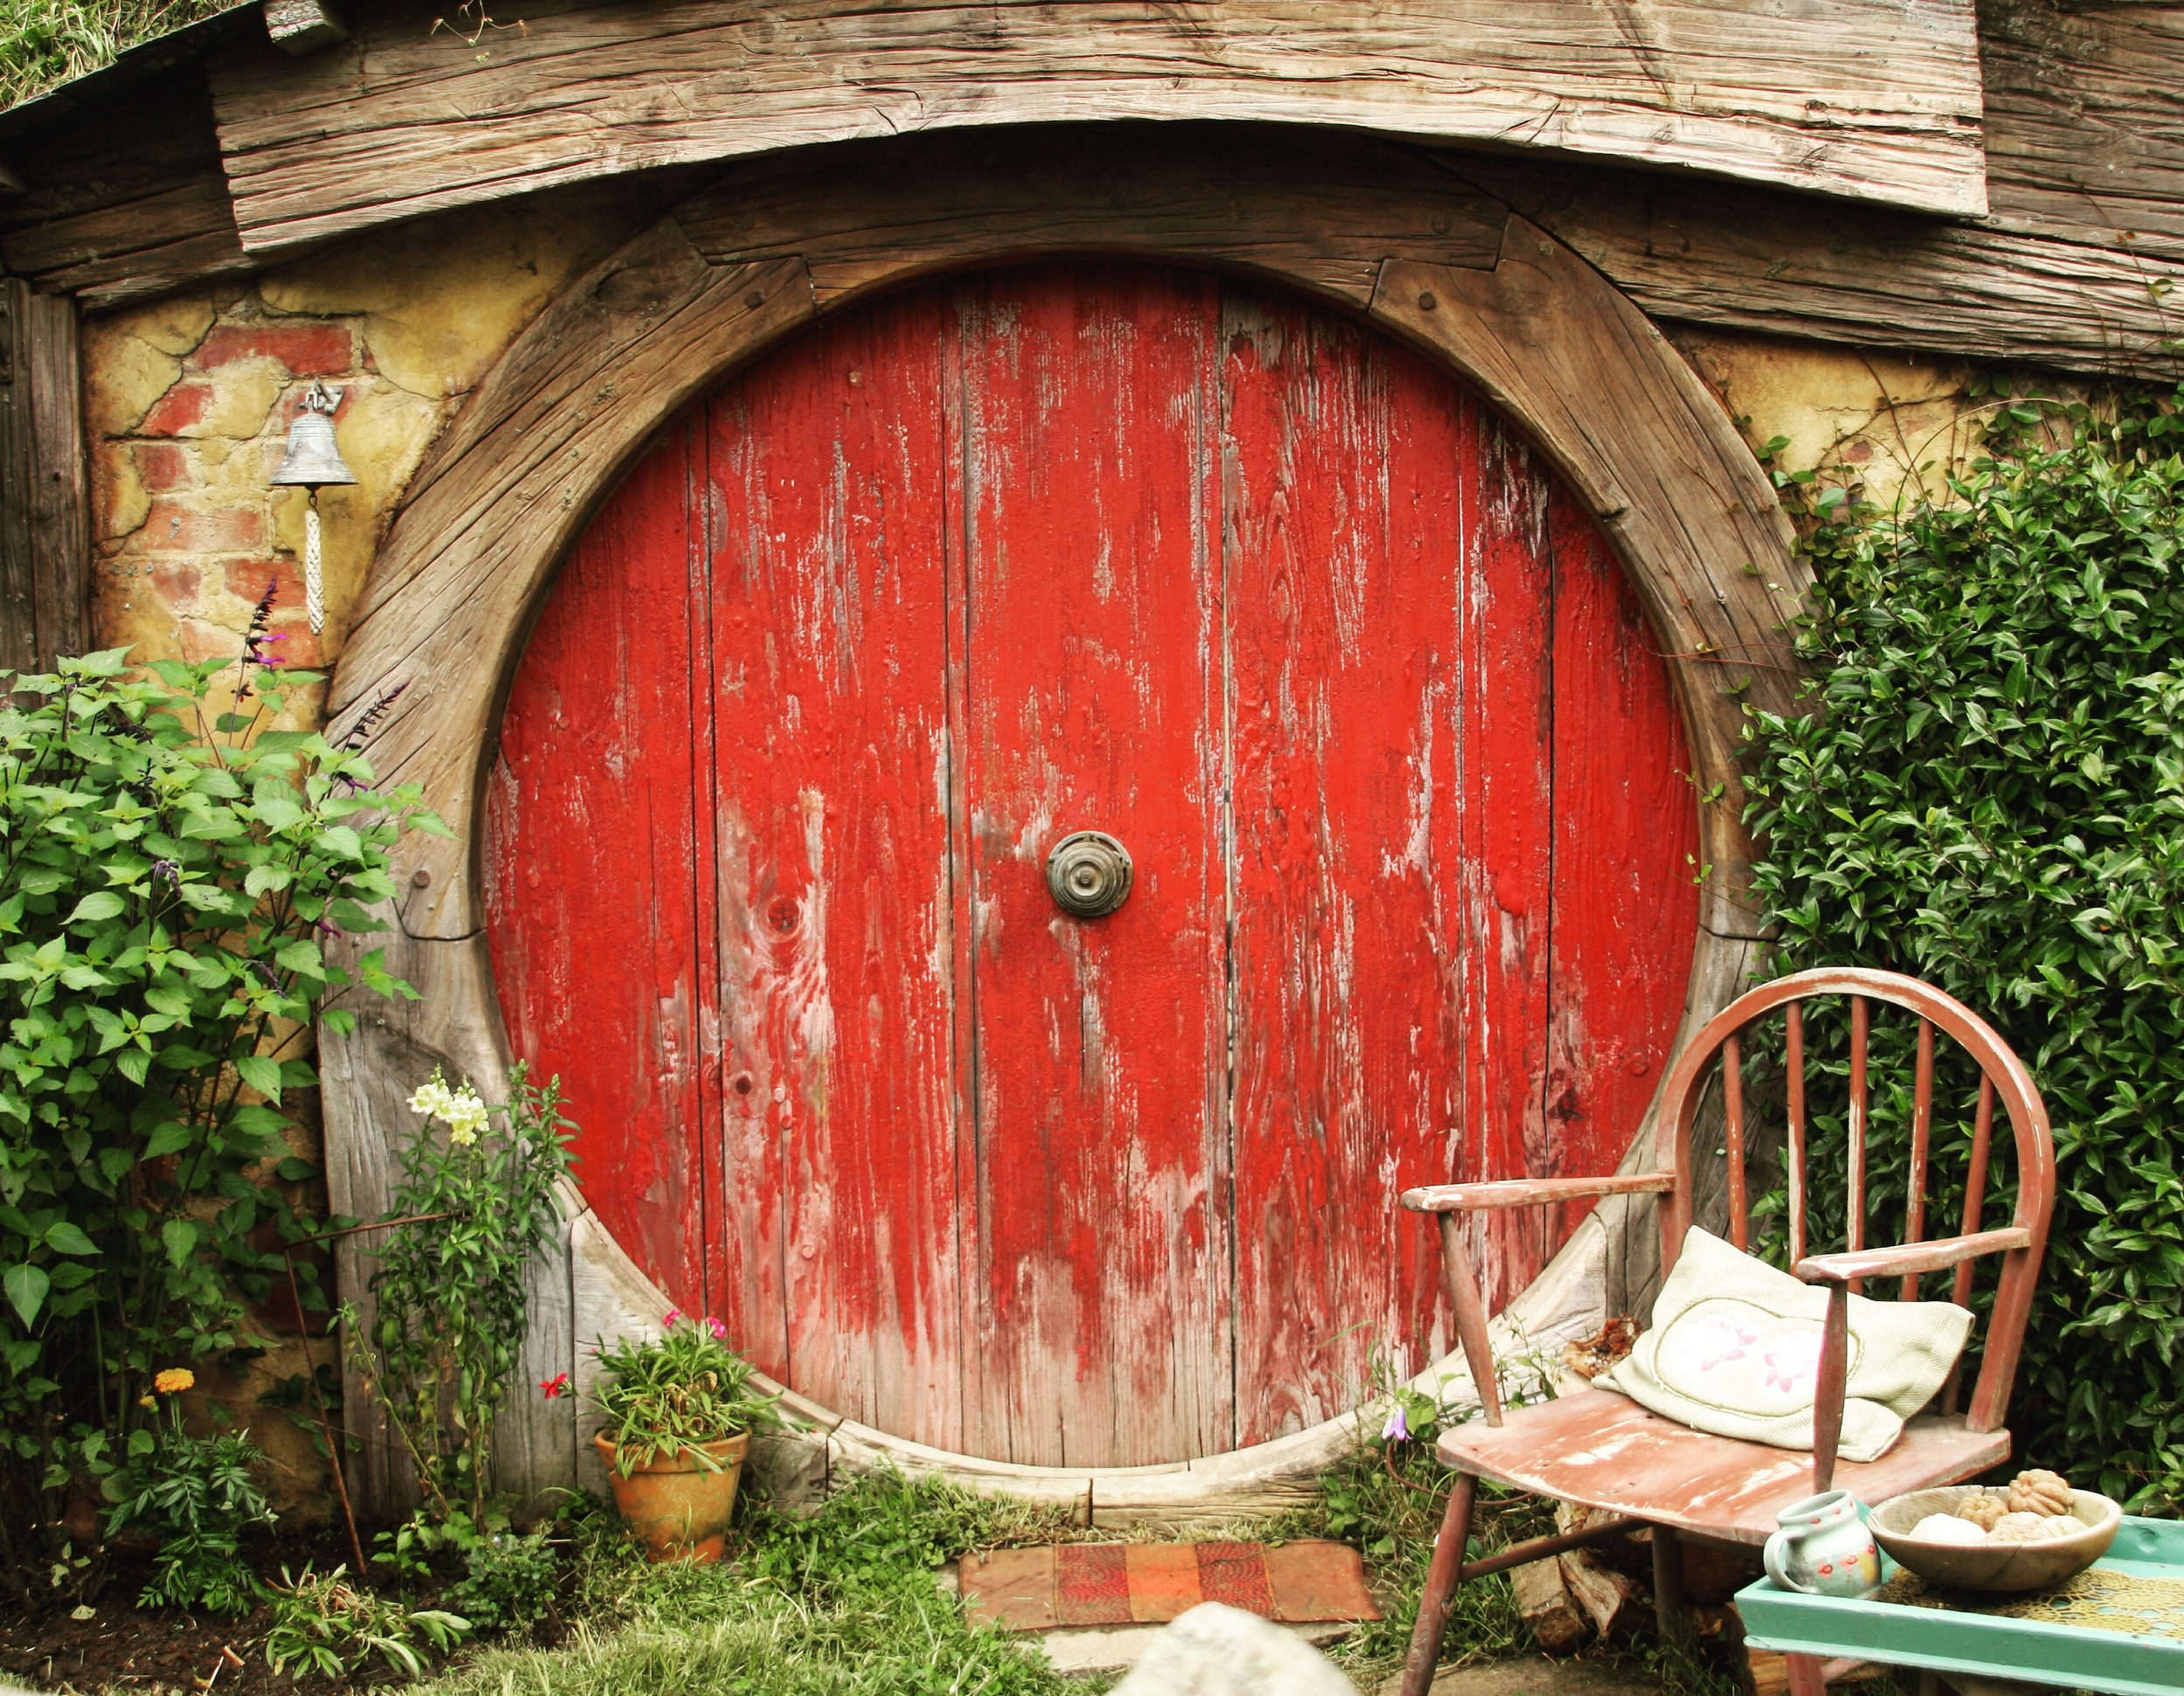 One of the many Hobbit doors.